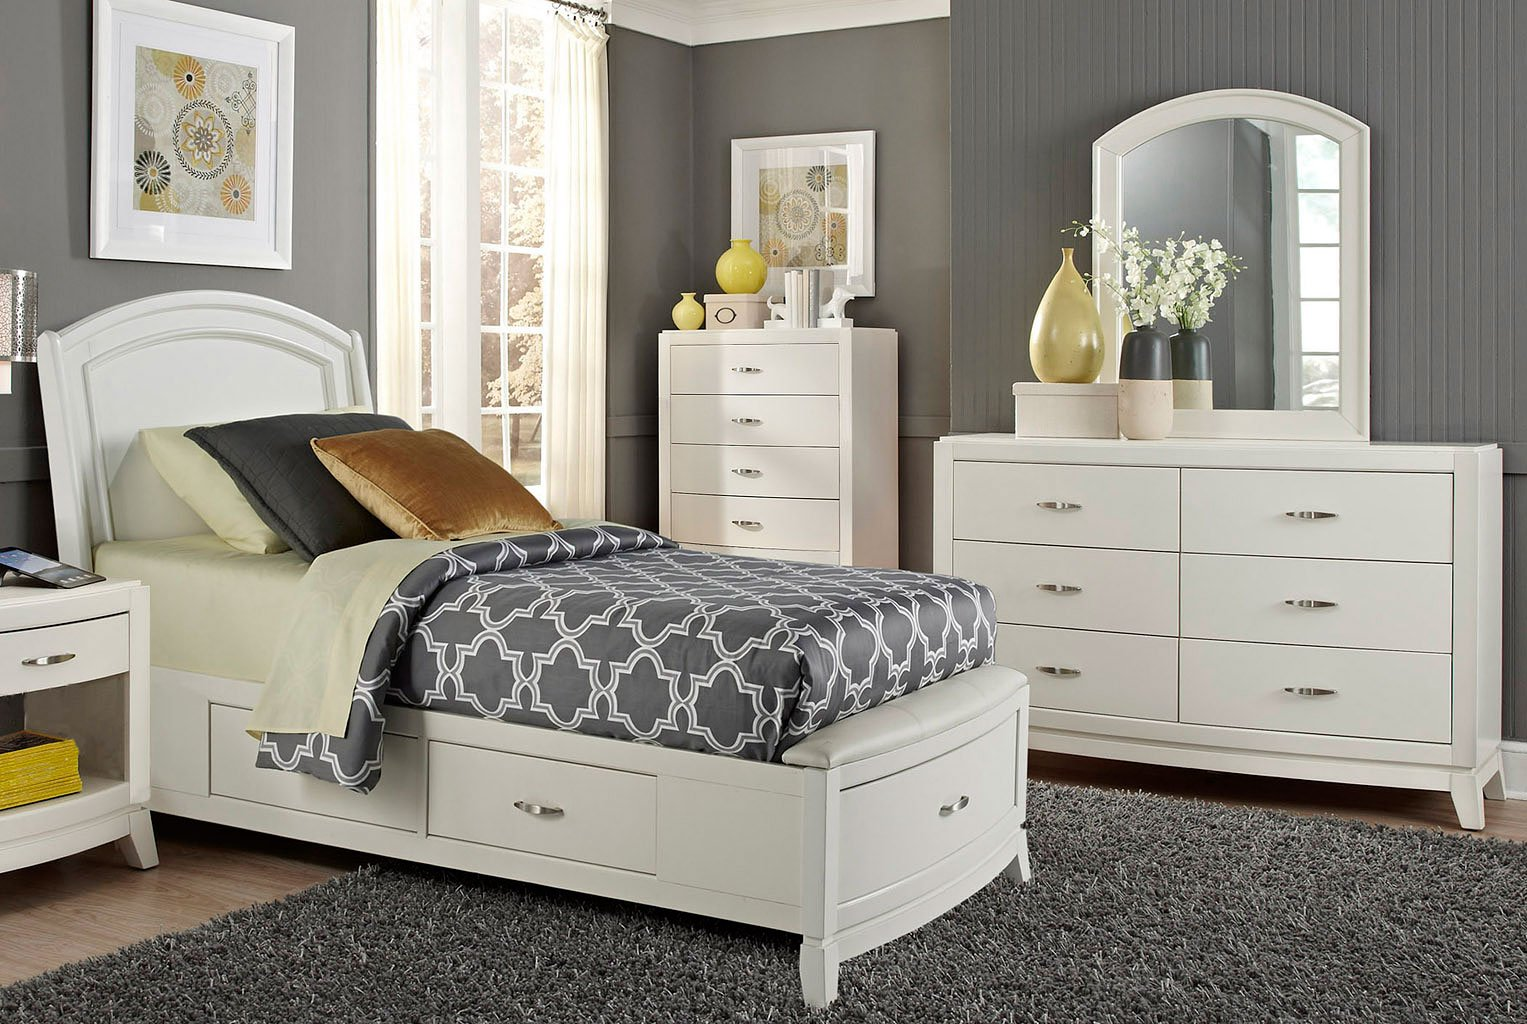 Avalon ii youth super storage bedroom set w upholstered - Youth bedroom furniture with storage ...